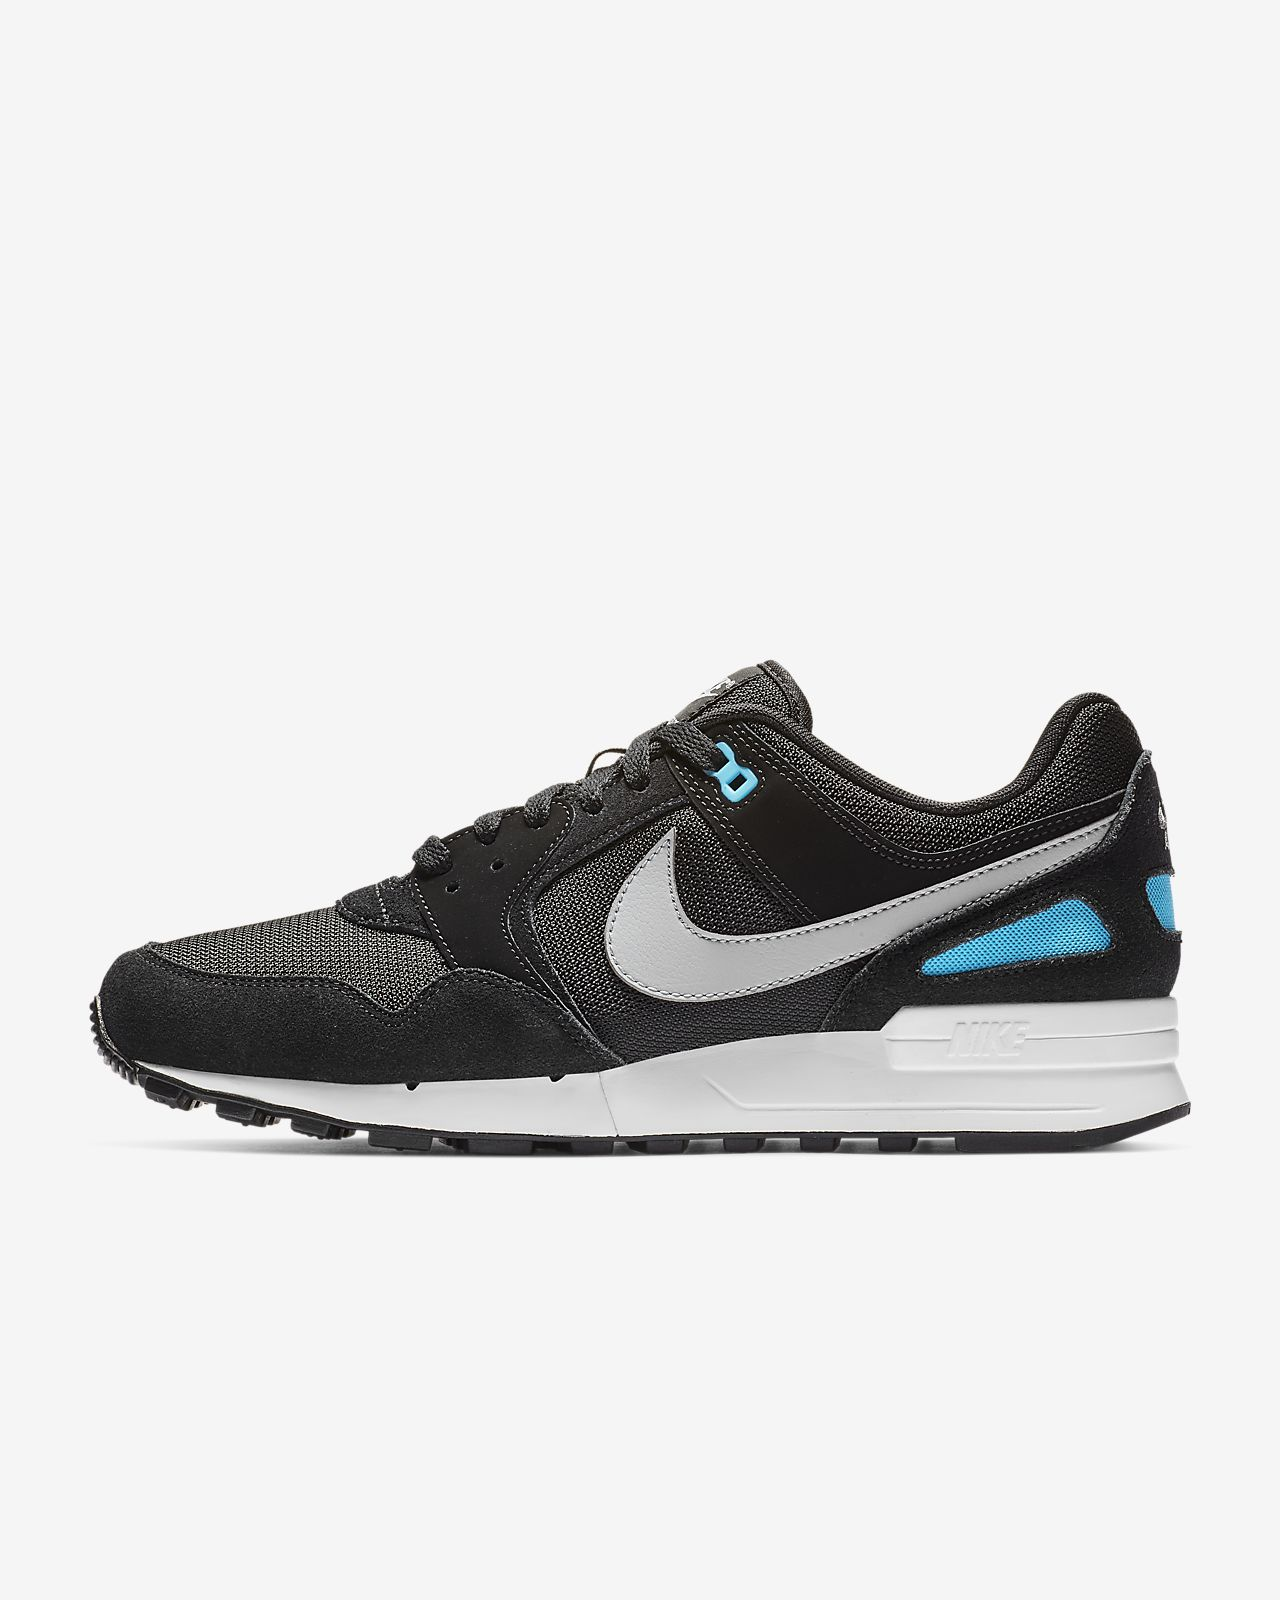 pretty nice 1a7c5 4ccb6 ... Nike Air Pegasus  89 Men s Shoe